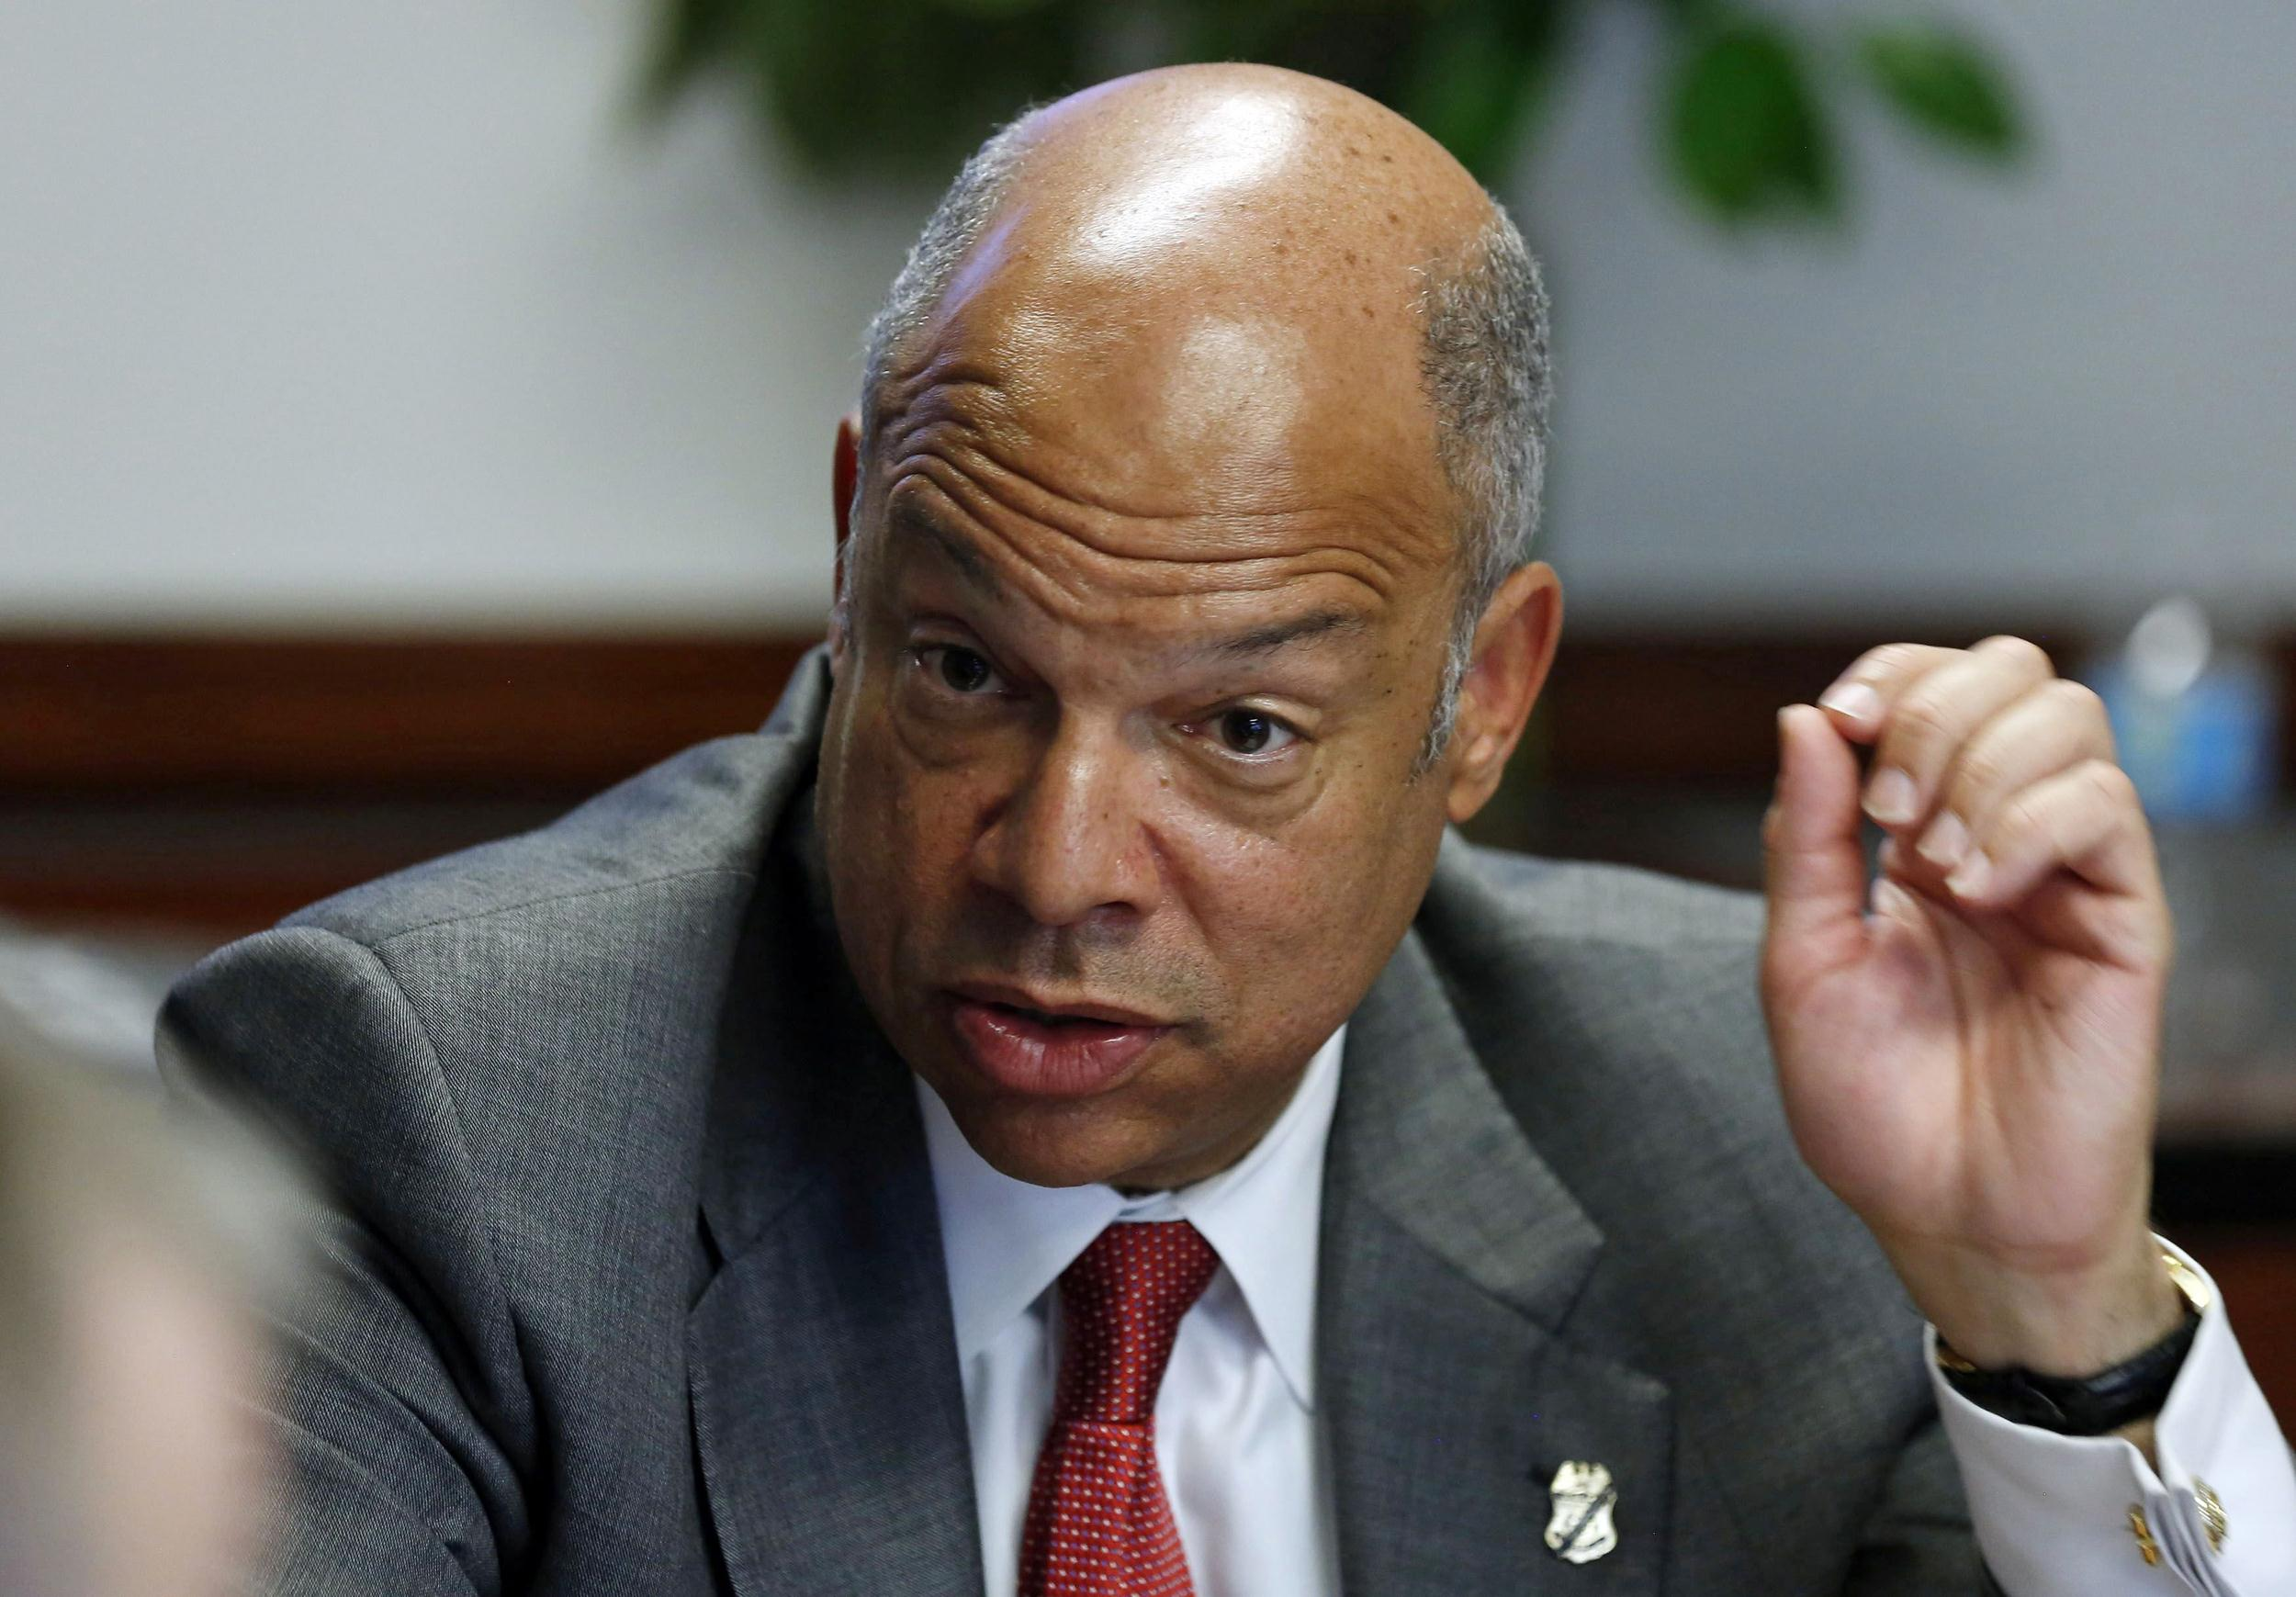 https://i1.wp.com/media1.s-nbcnews.com/i/newscms/2014_22/473701/140529-jeh-johnson-mn-851_60fccc3ca5a5c78caceca6581699837f.jpg